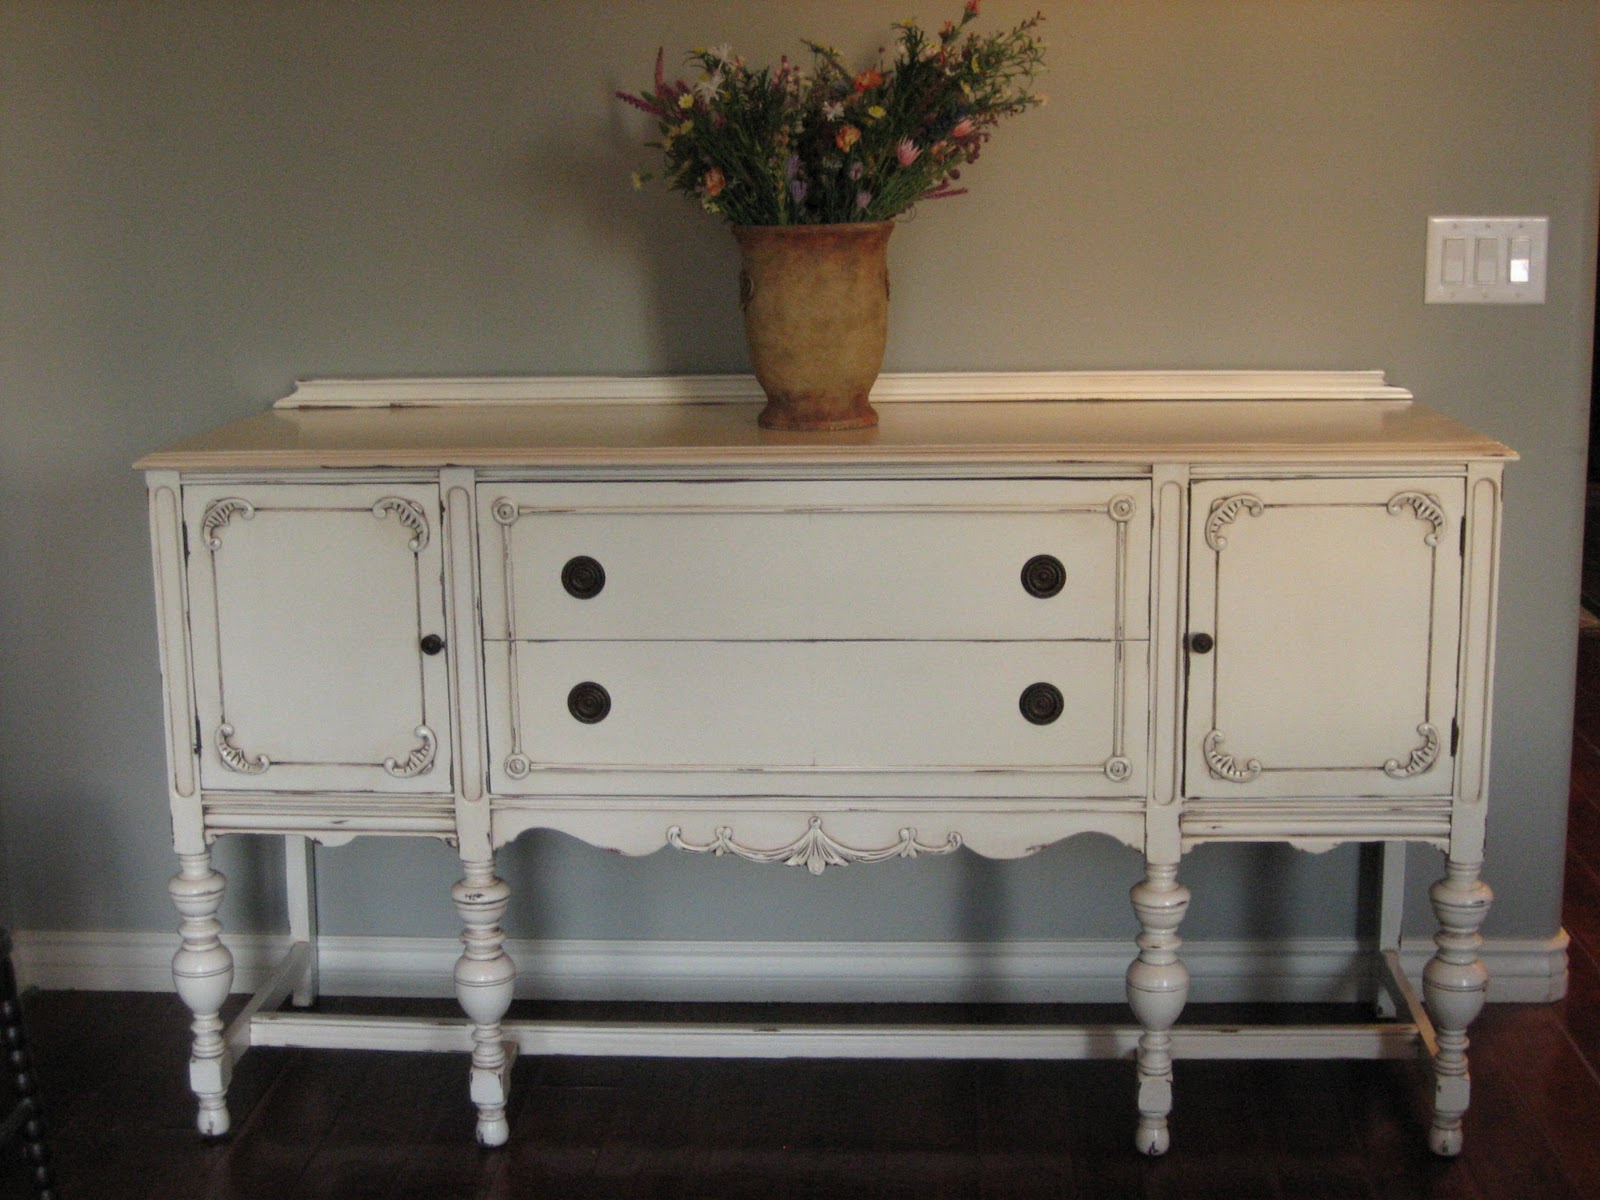 Sideboard Vintage European Paint Finishes Another Pretty Antique Sideboard